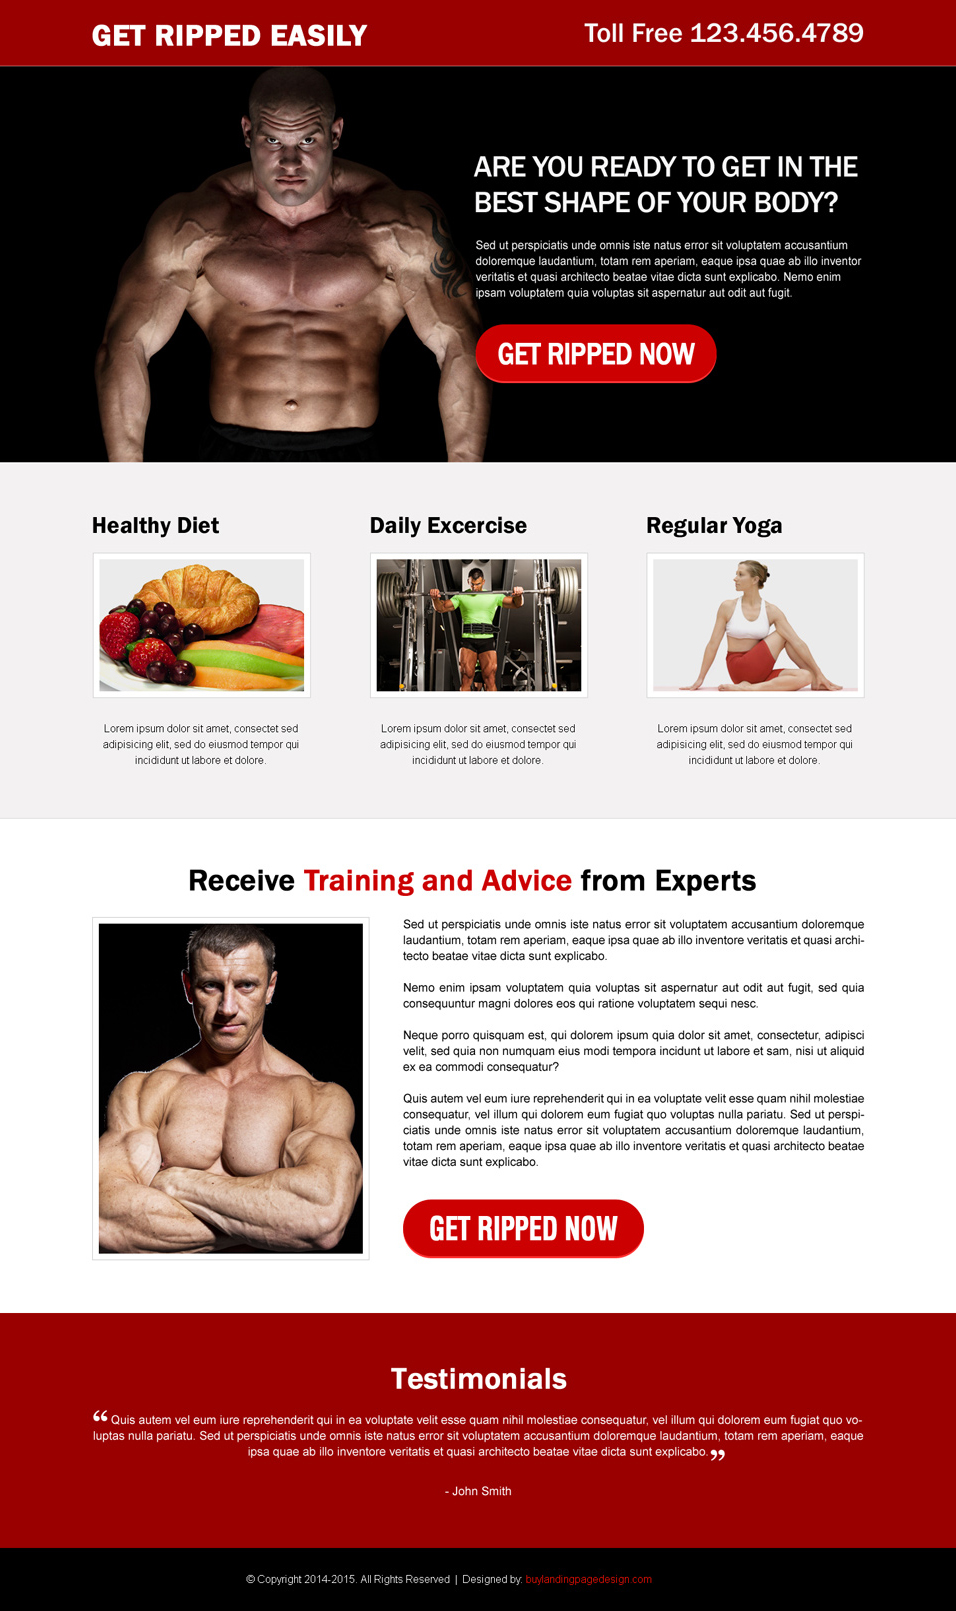 get-ripped-easily-bodybuilding-call-to-action-converting-responsive-landing-page-design-templates-005